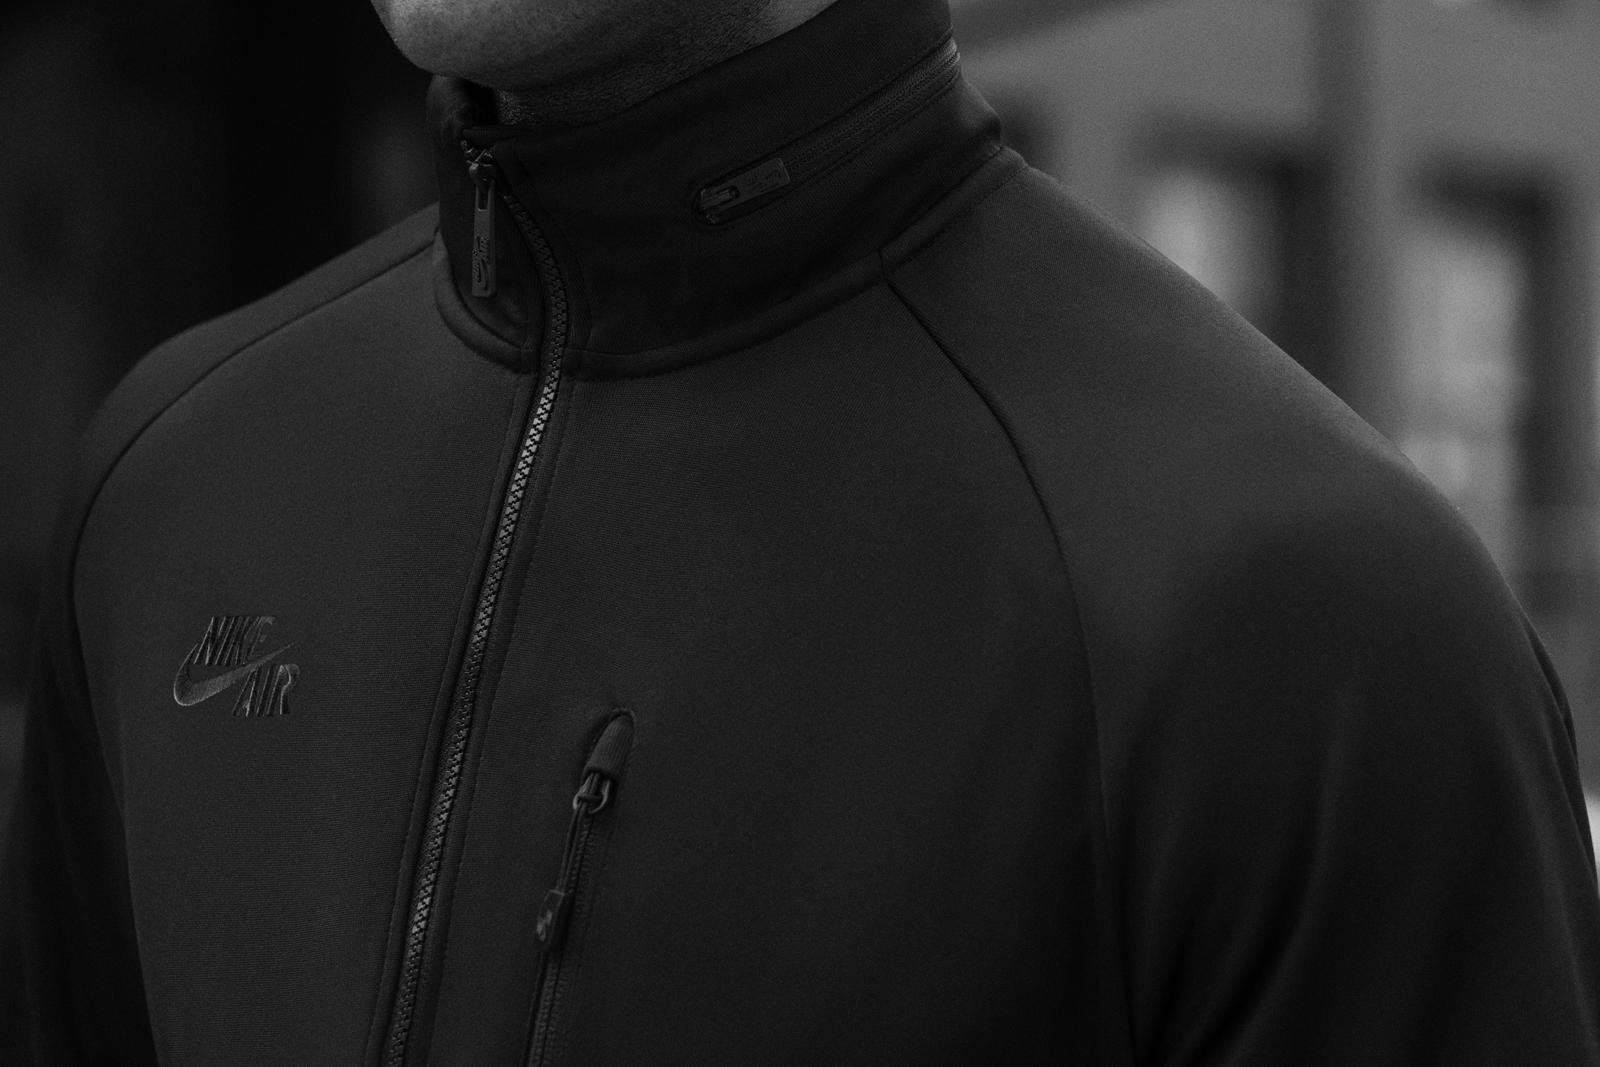 Nike-Air-Crossover-Warm-Up-Jacket_1